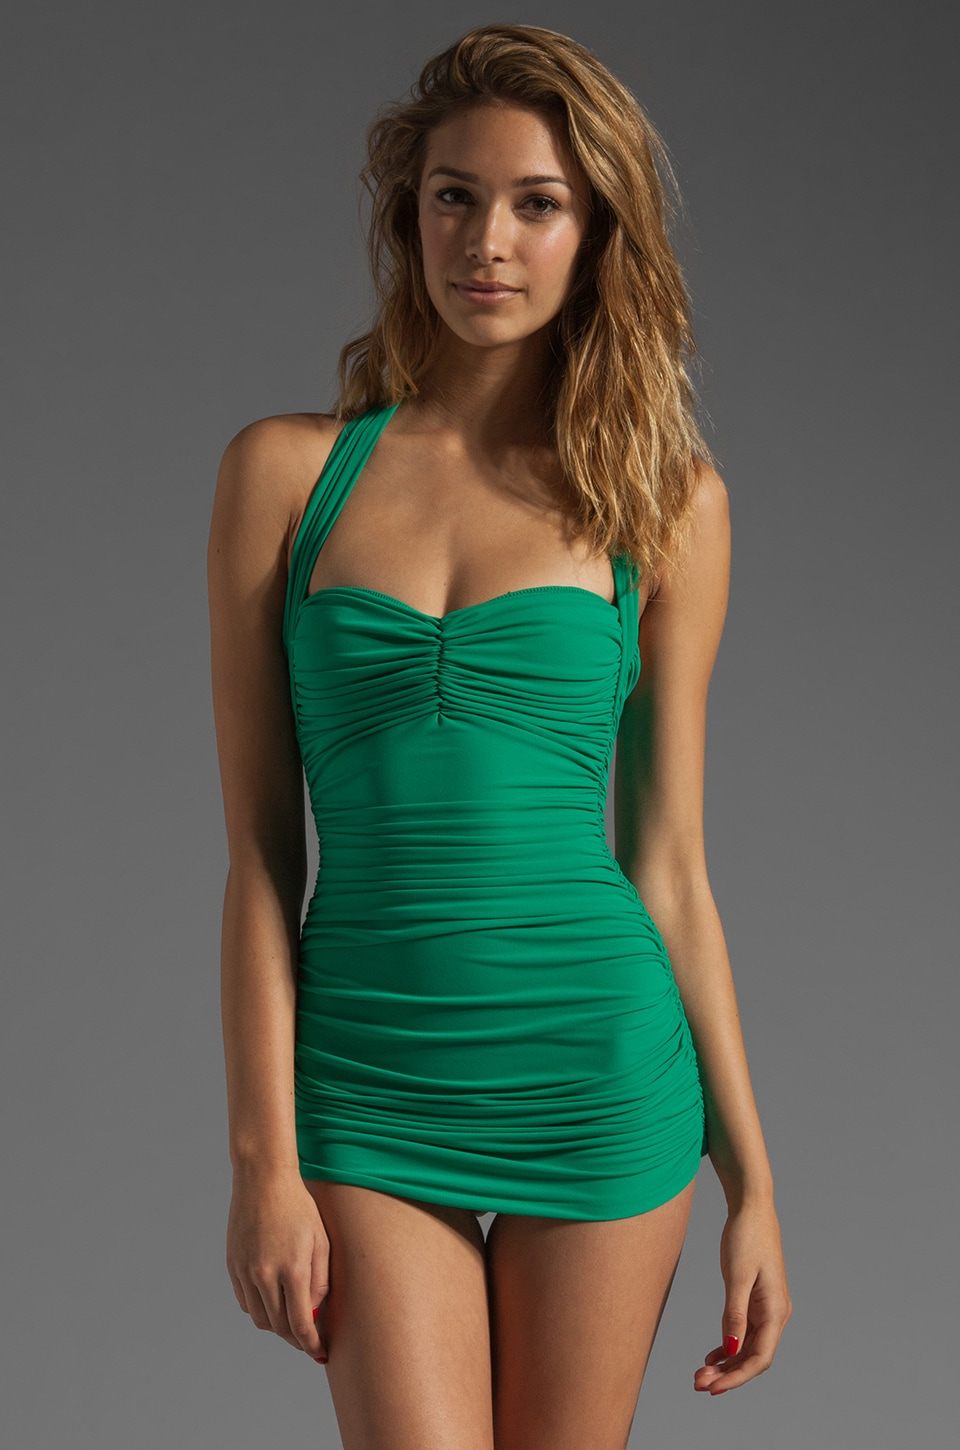 Norma Kamali Bill Mio One-Piece in Net Green